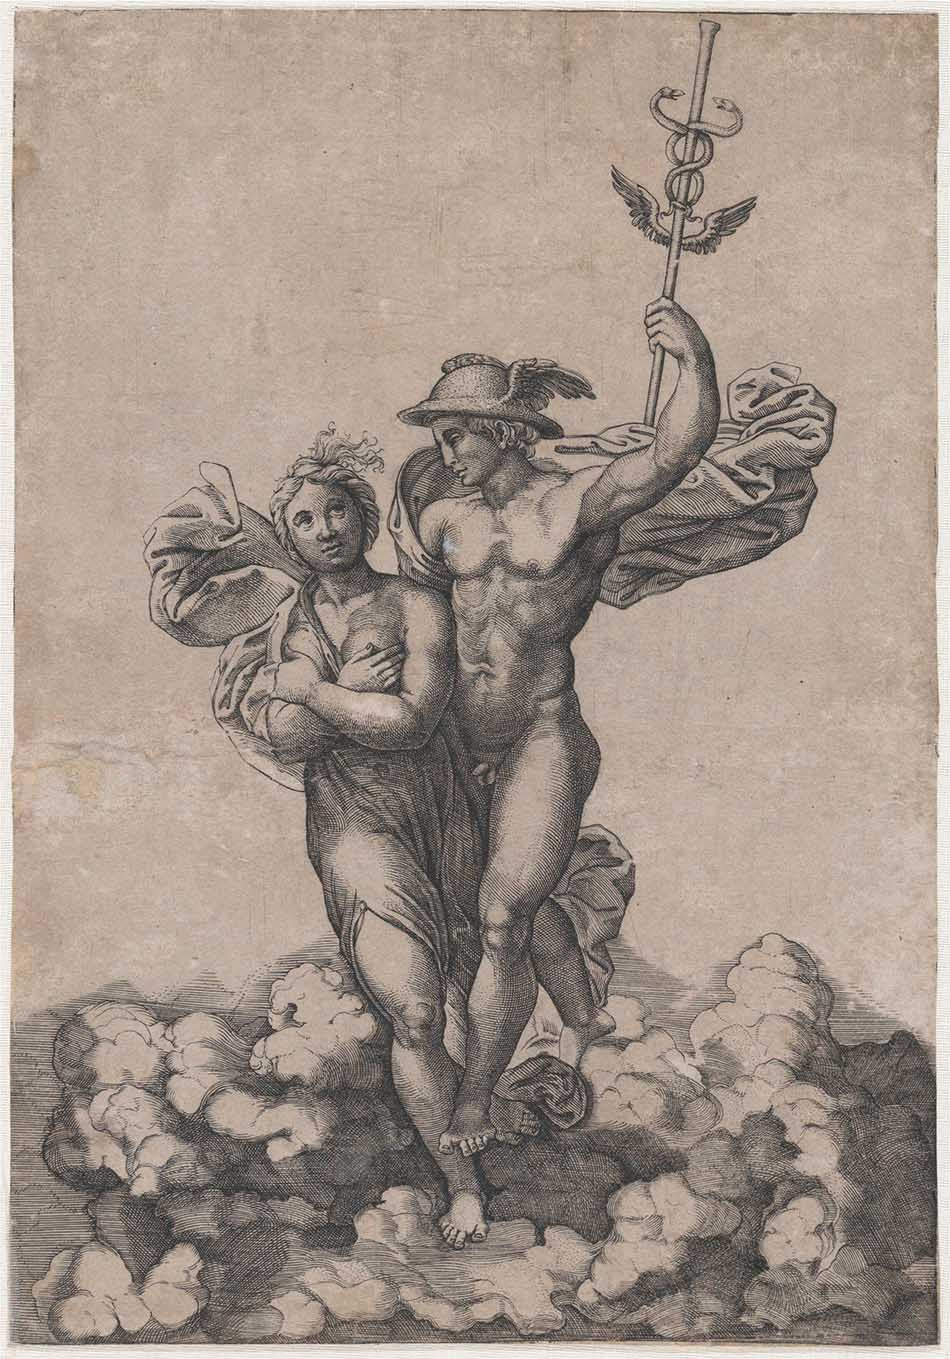 4969-075_gian jacopo calaglio after raphael_mercury and psyche